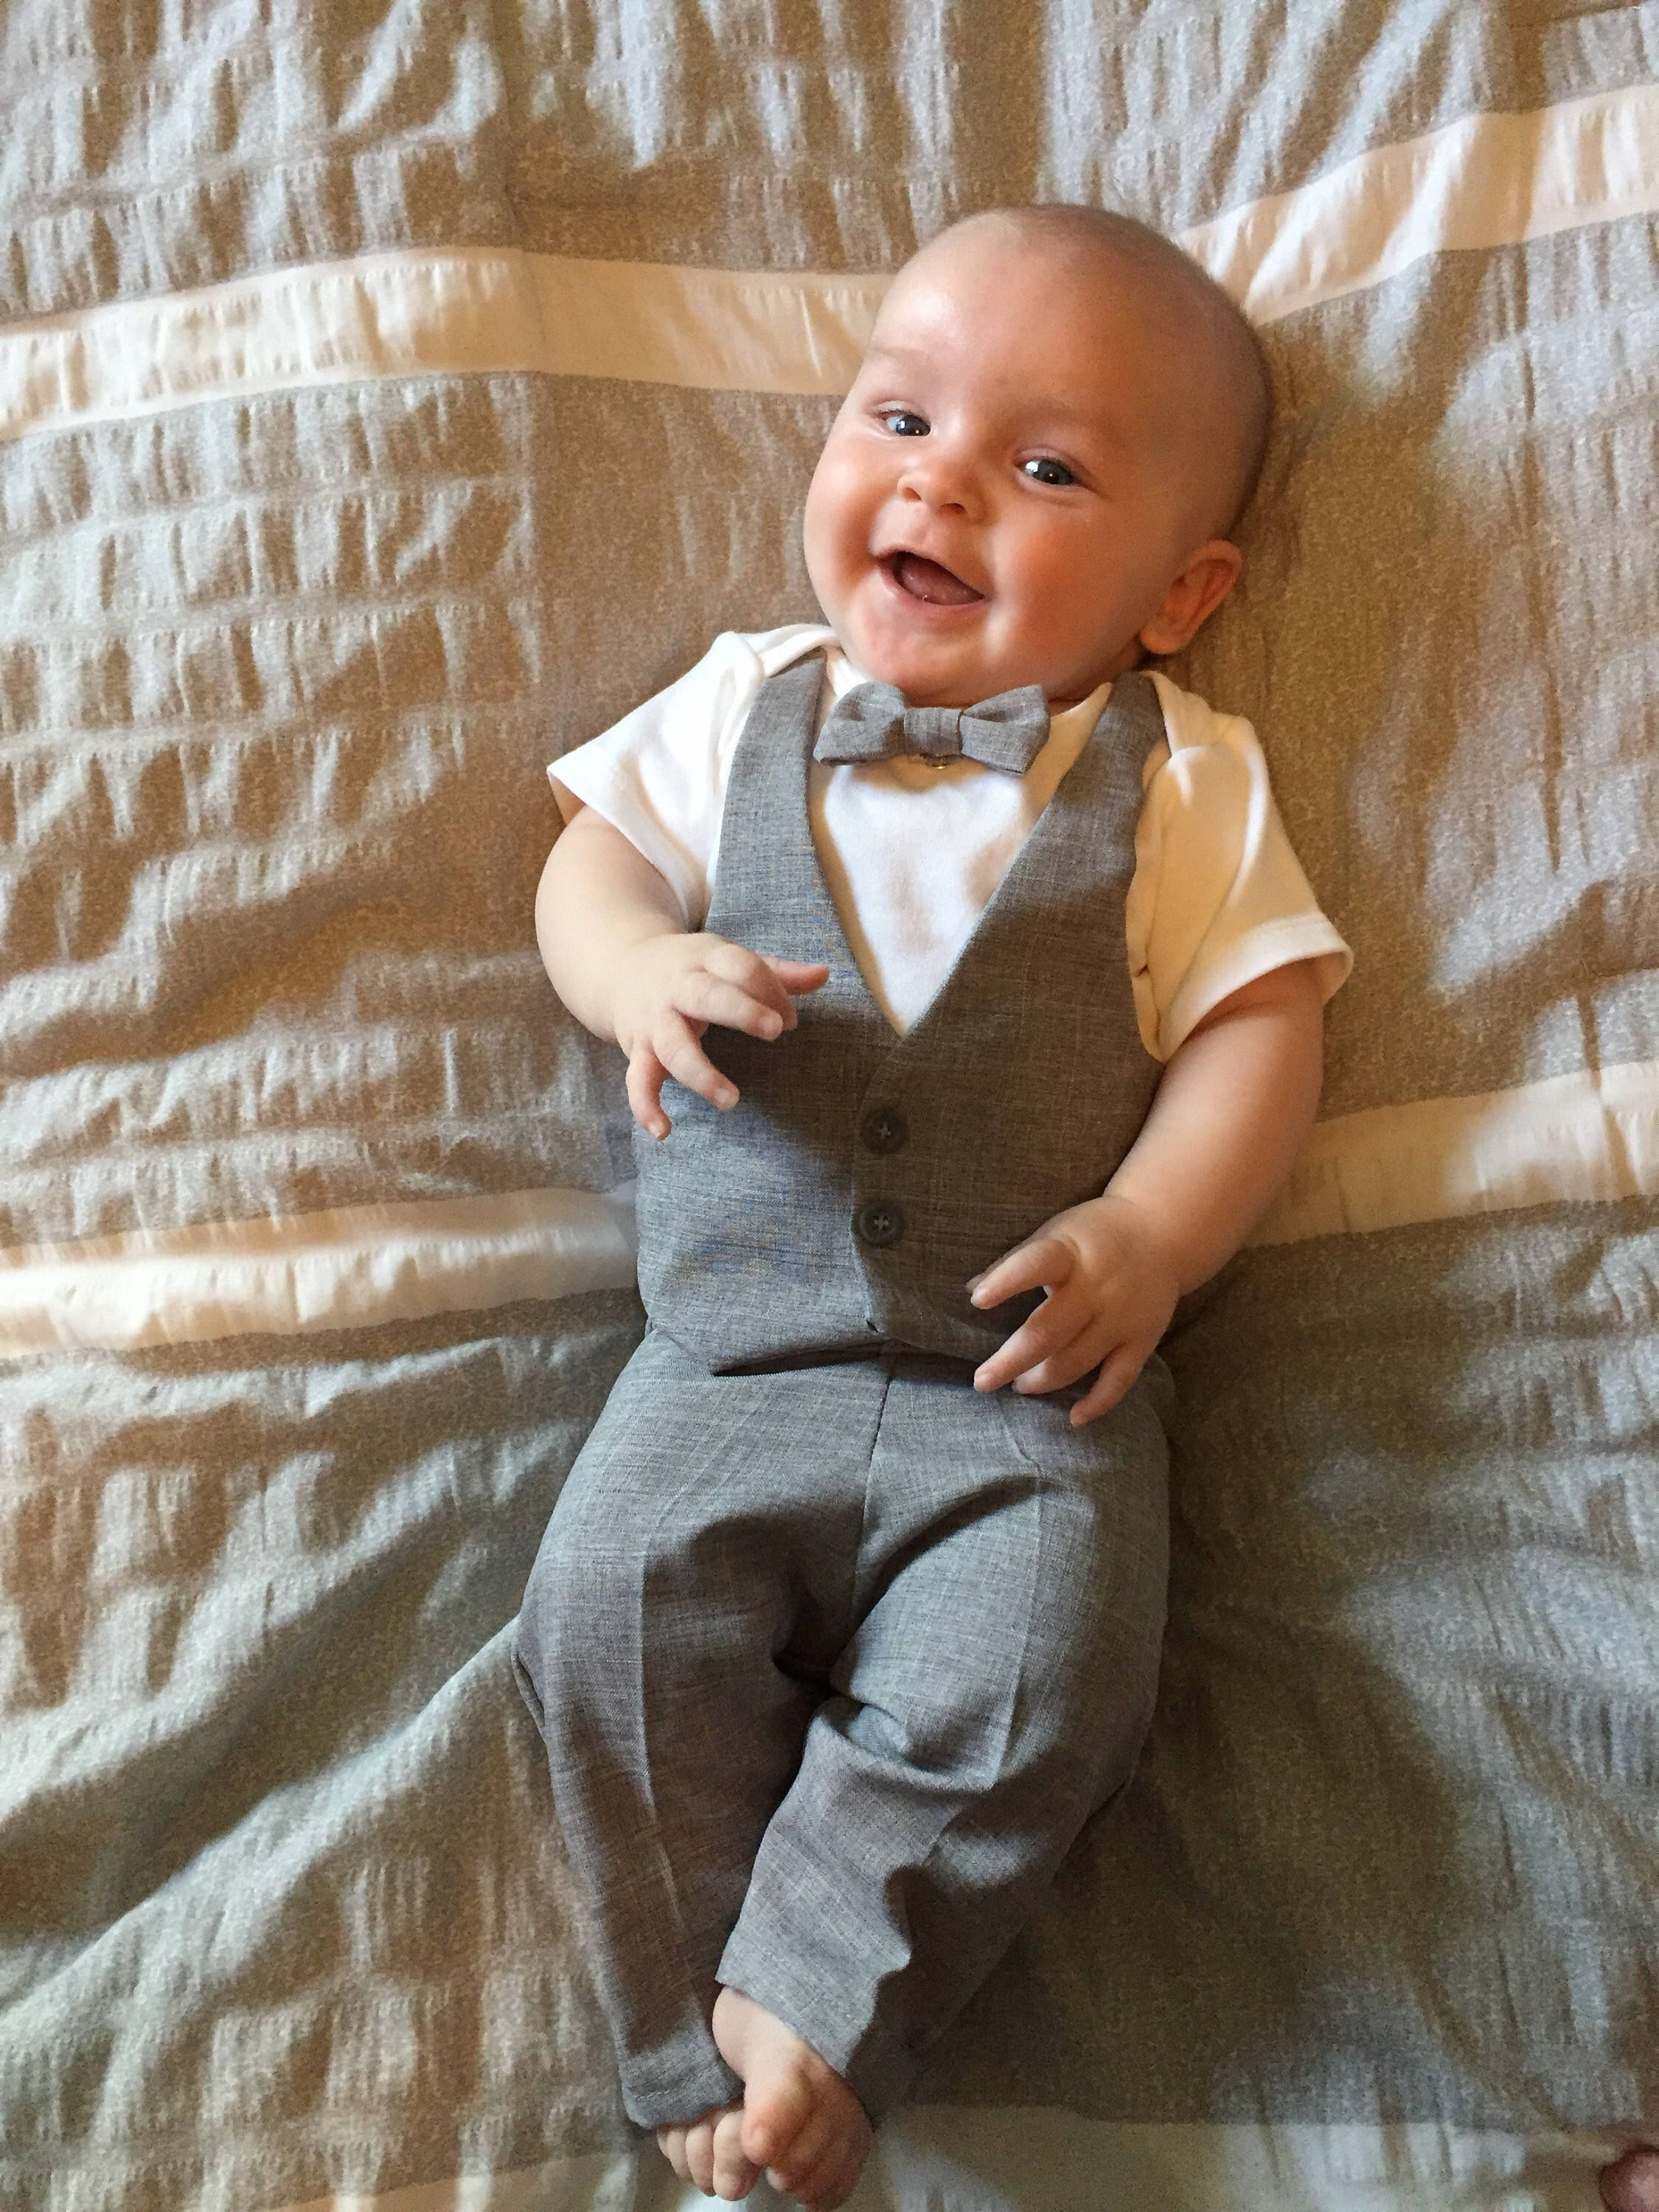 Boys Ring Bearer Outfit Baby Boy Wedding Outfit,291356 Ring Bearer Outfit Wedding Boy Suit Baby Wedding Outfit